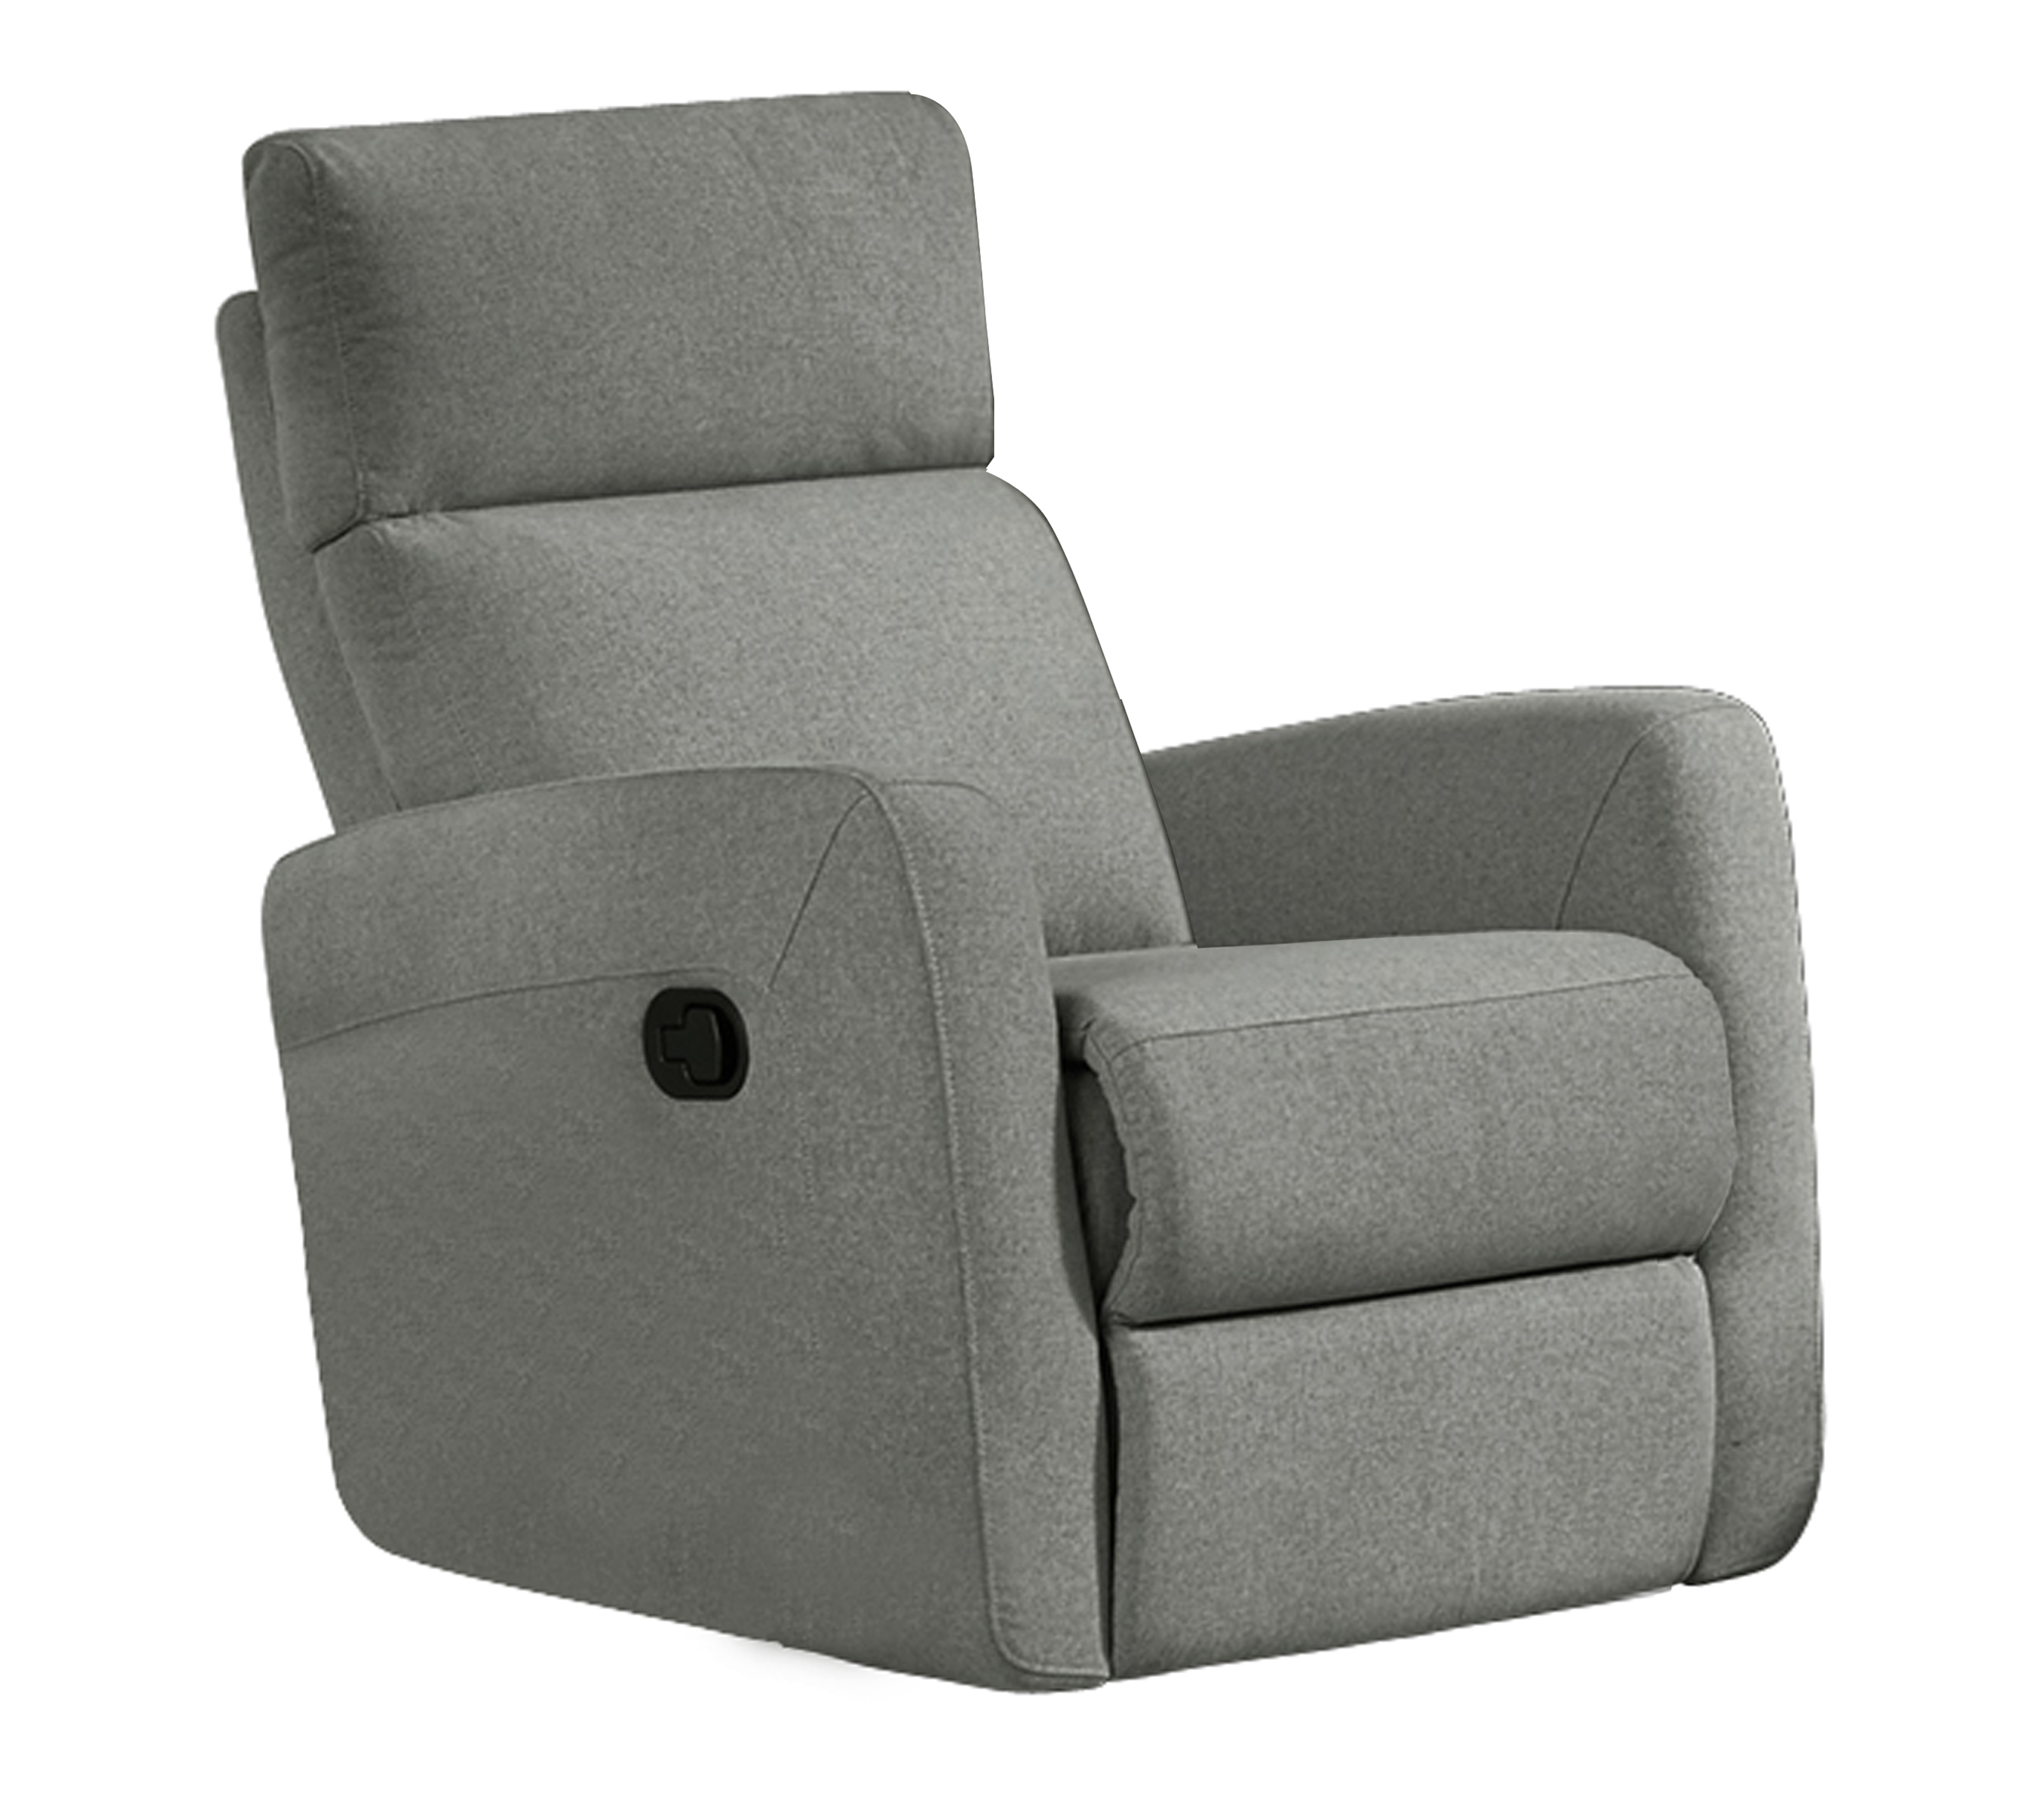 HR045G (K26) Husky Victoria Reclining Chair Gray